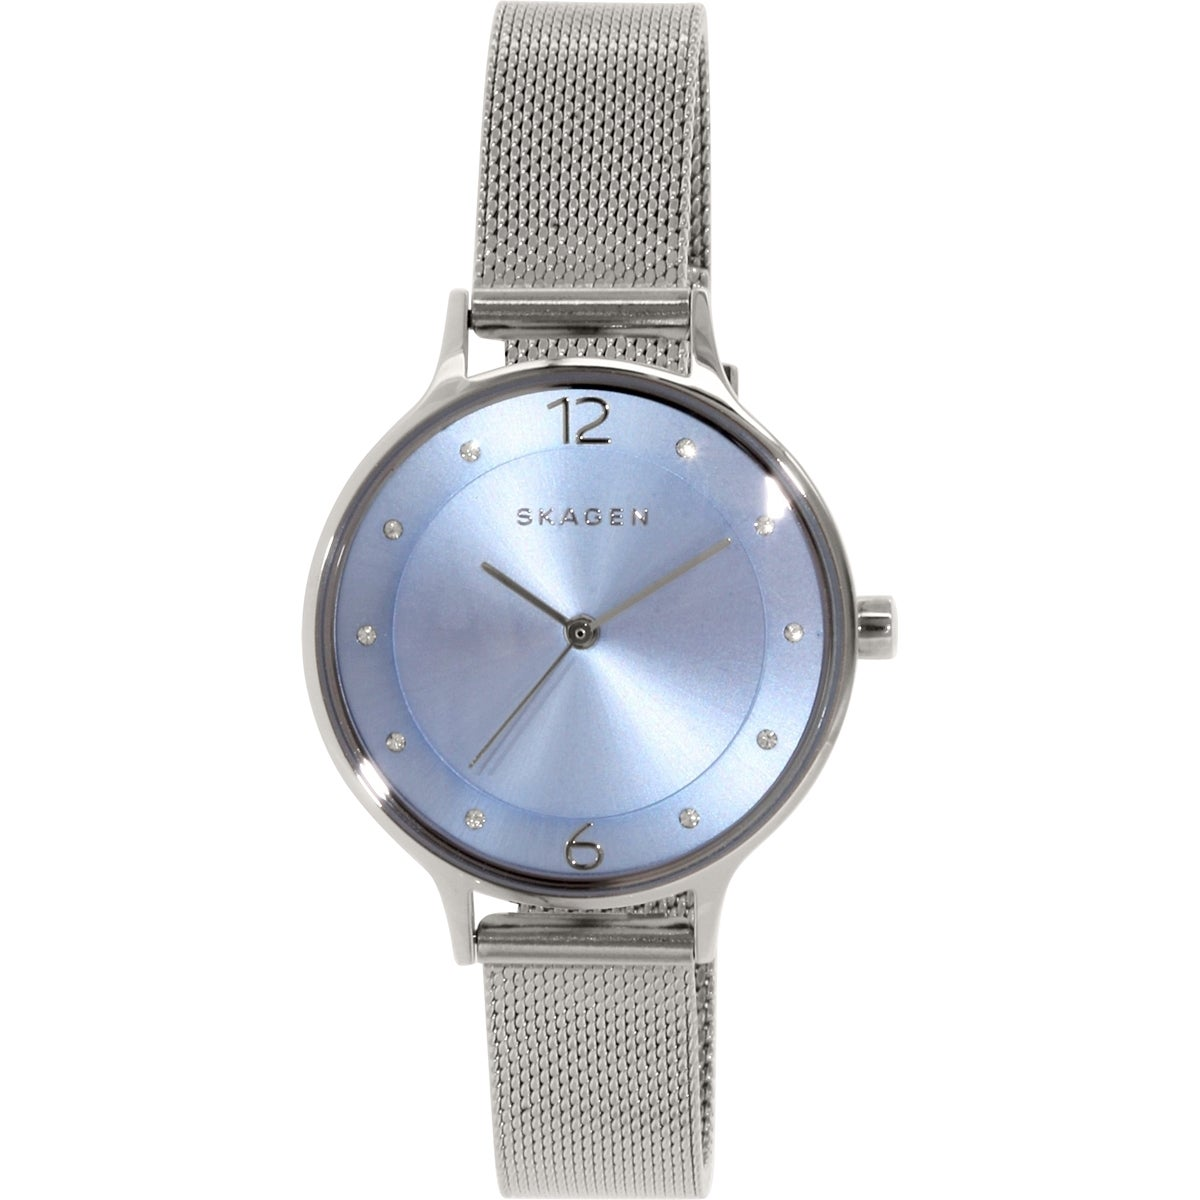 Shop Skagen Women s Anita SKW2319 Stainless Steel Quartz Watch - Free  Shipping Today - Overstock - 10166683 84e60707ddc